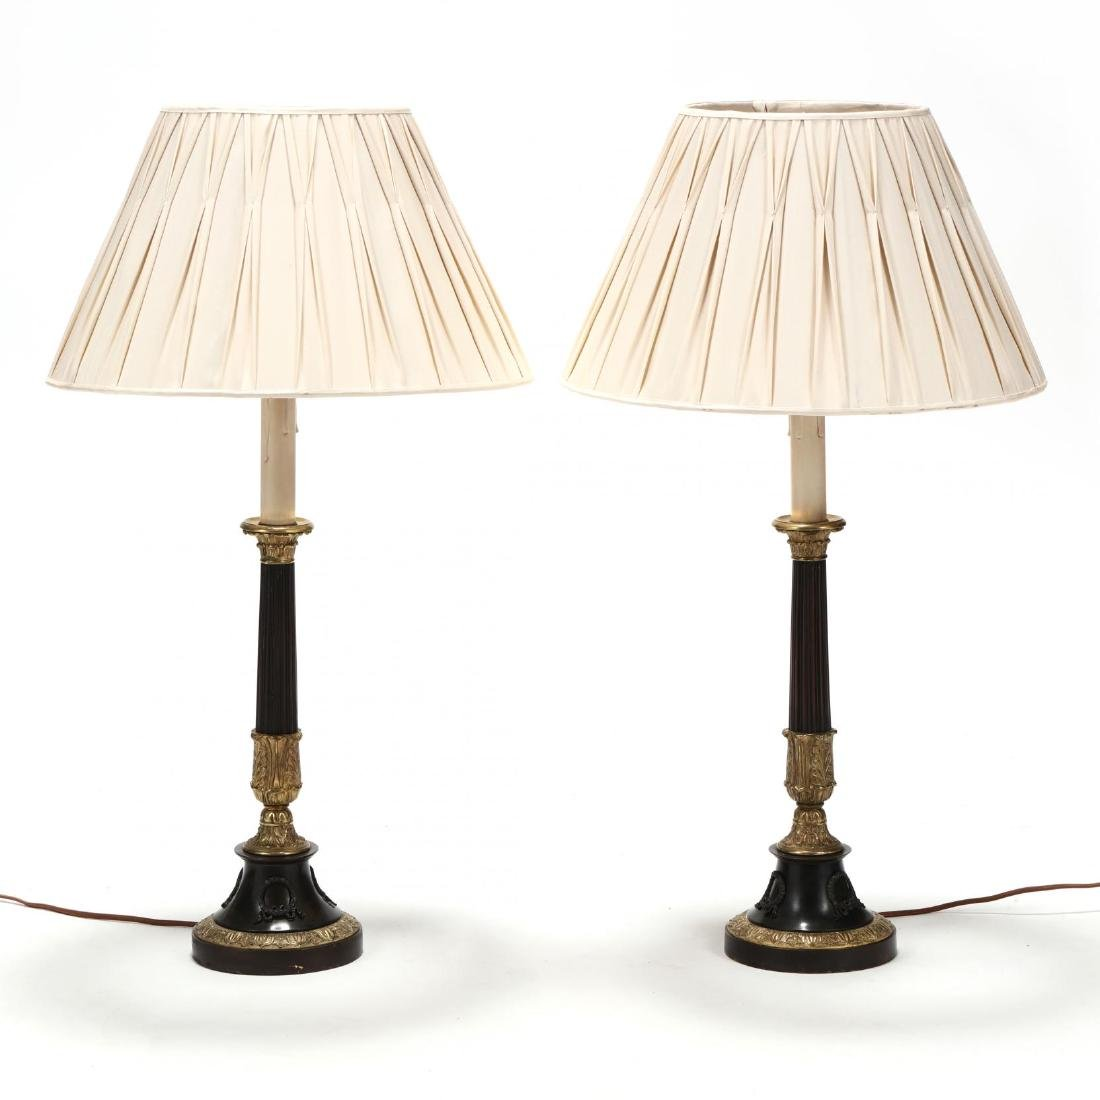 Pair of Neoclassical Style Table Lamps